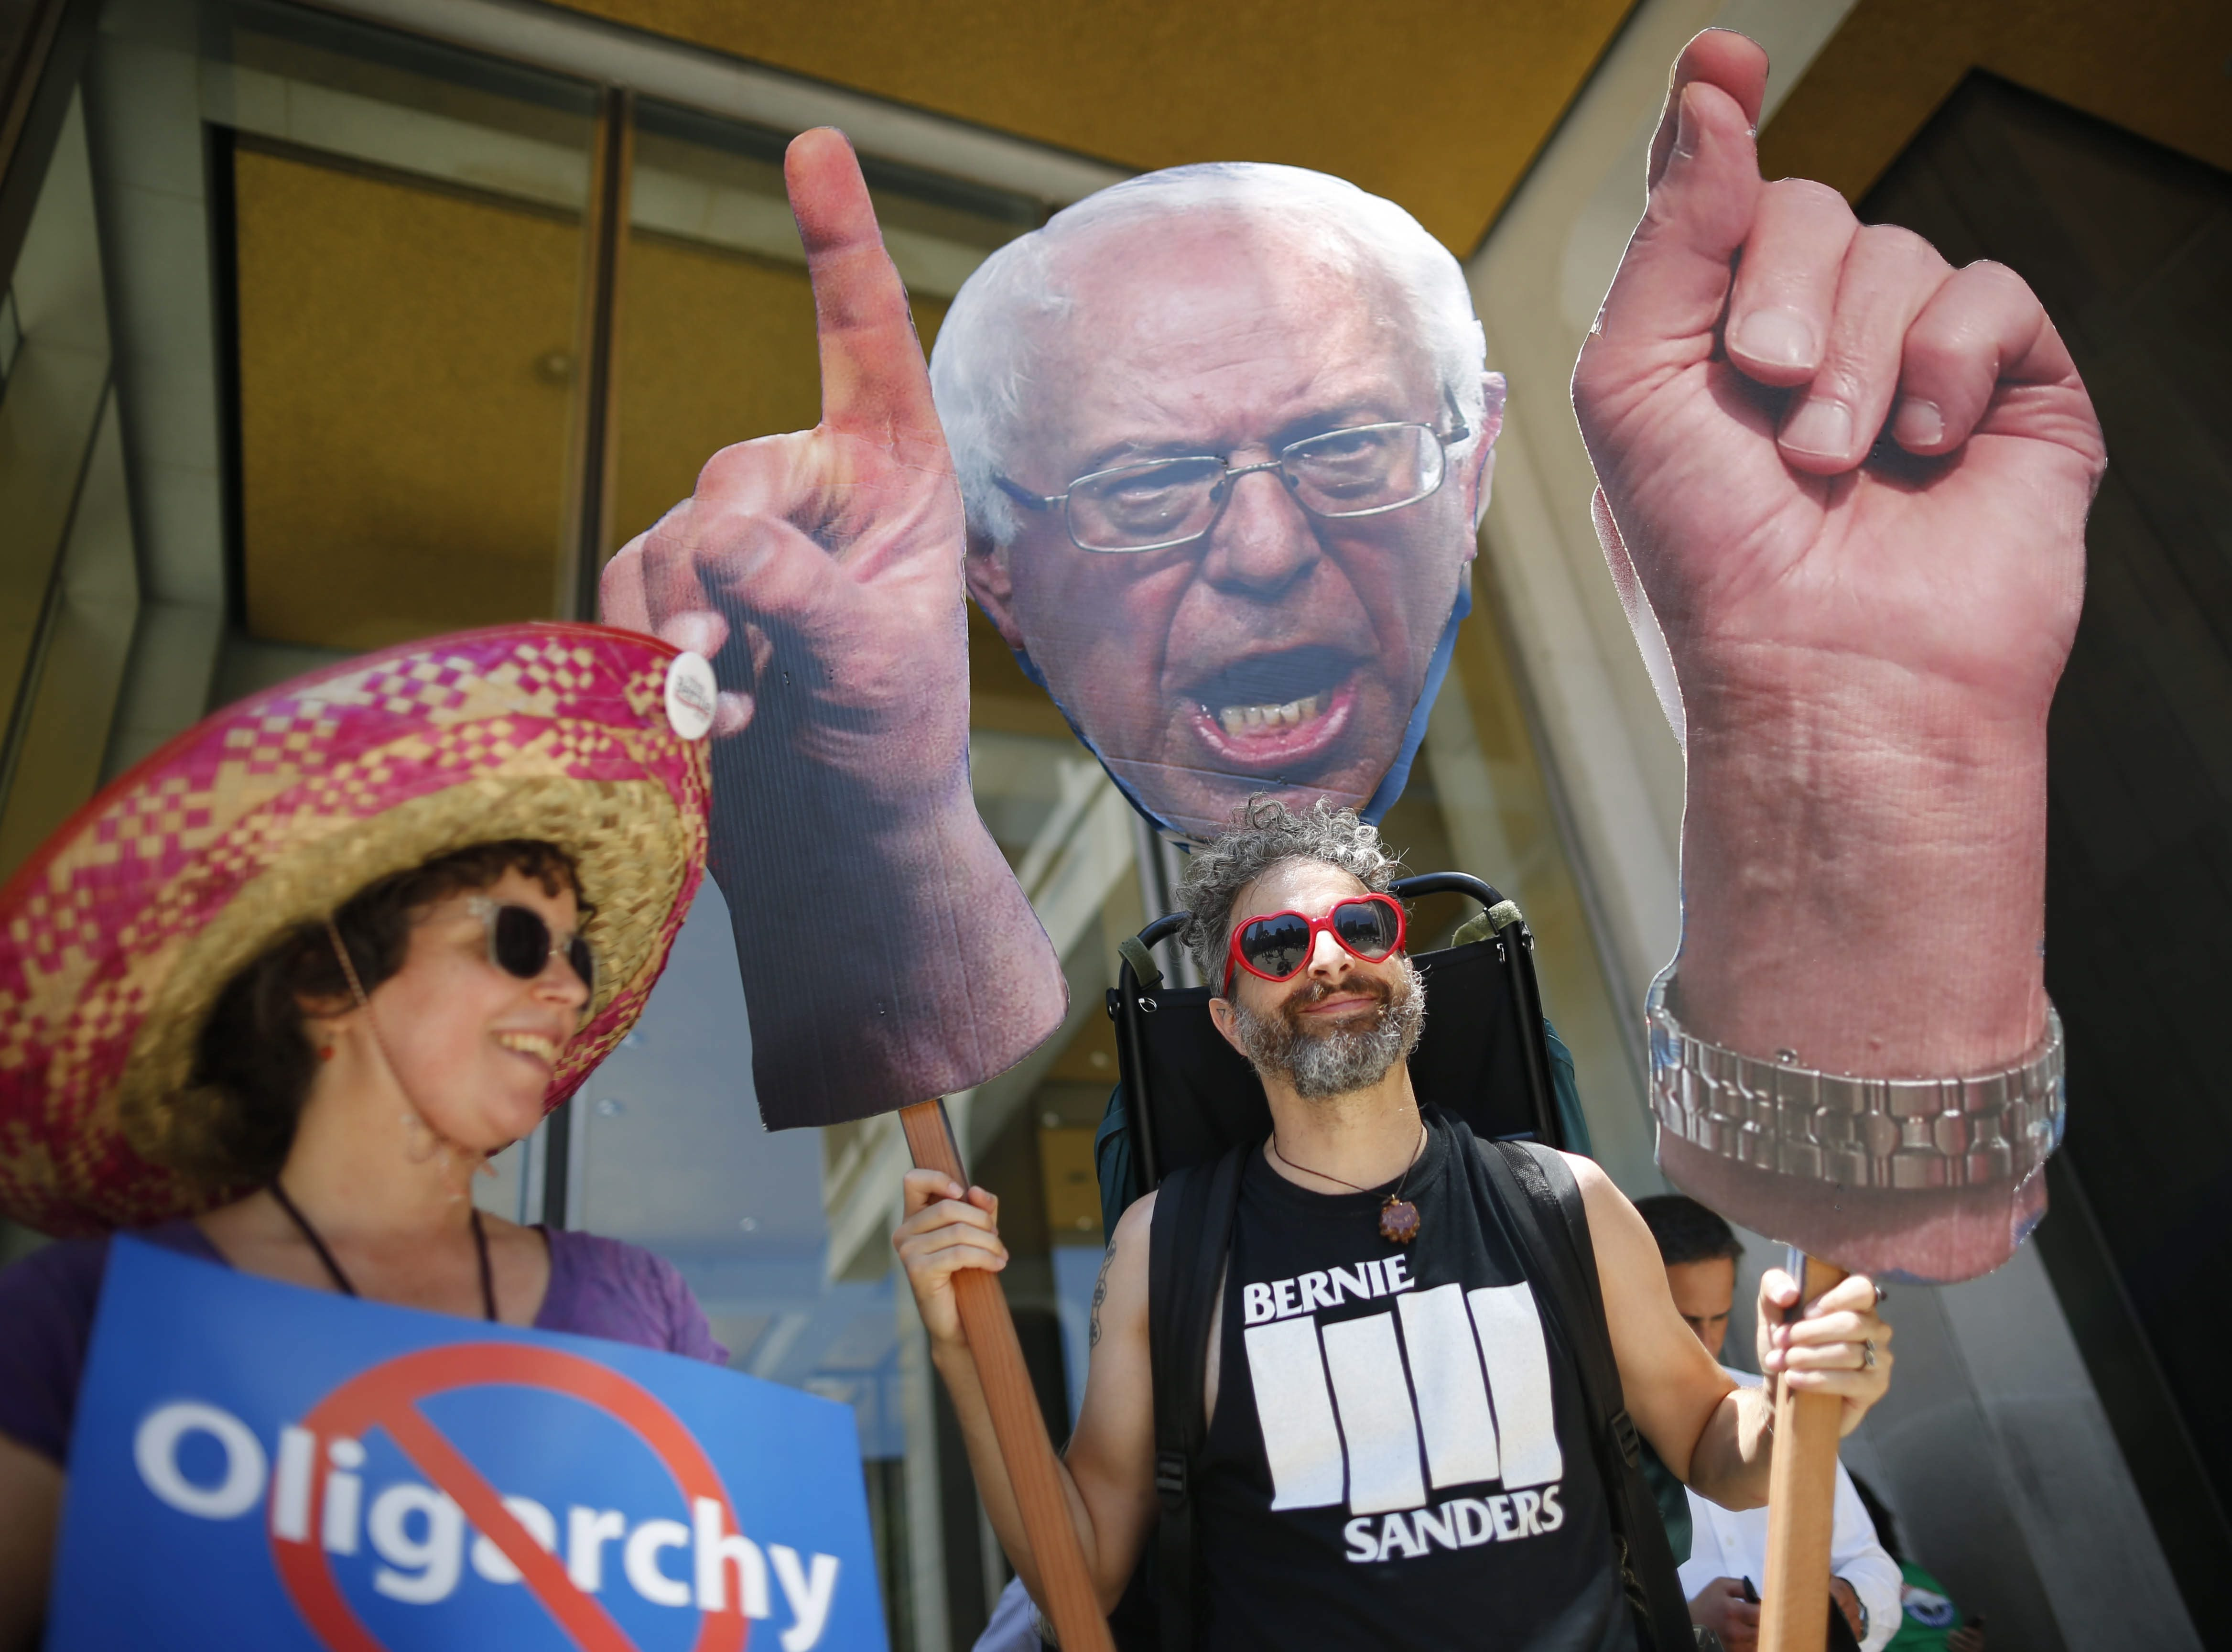 A protester outside the Democratic National Convention carries a larger-than-life Bernie Sanders puppet during a rally in Philadelphia on July 27  (Derek Gee/Buffalo News)